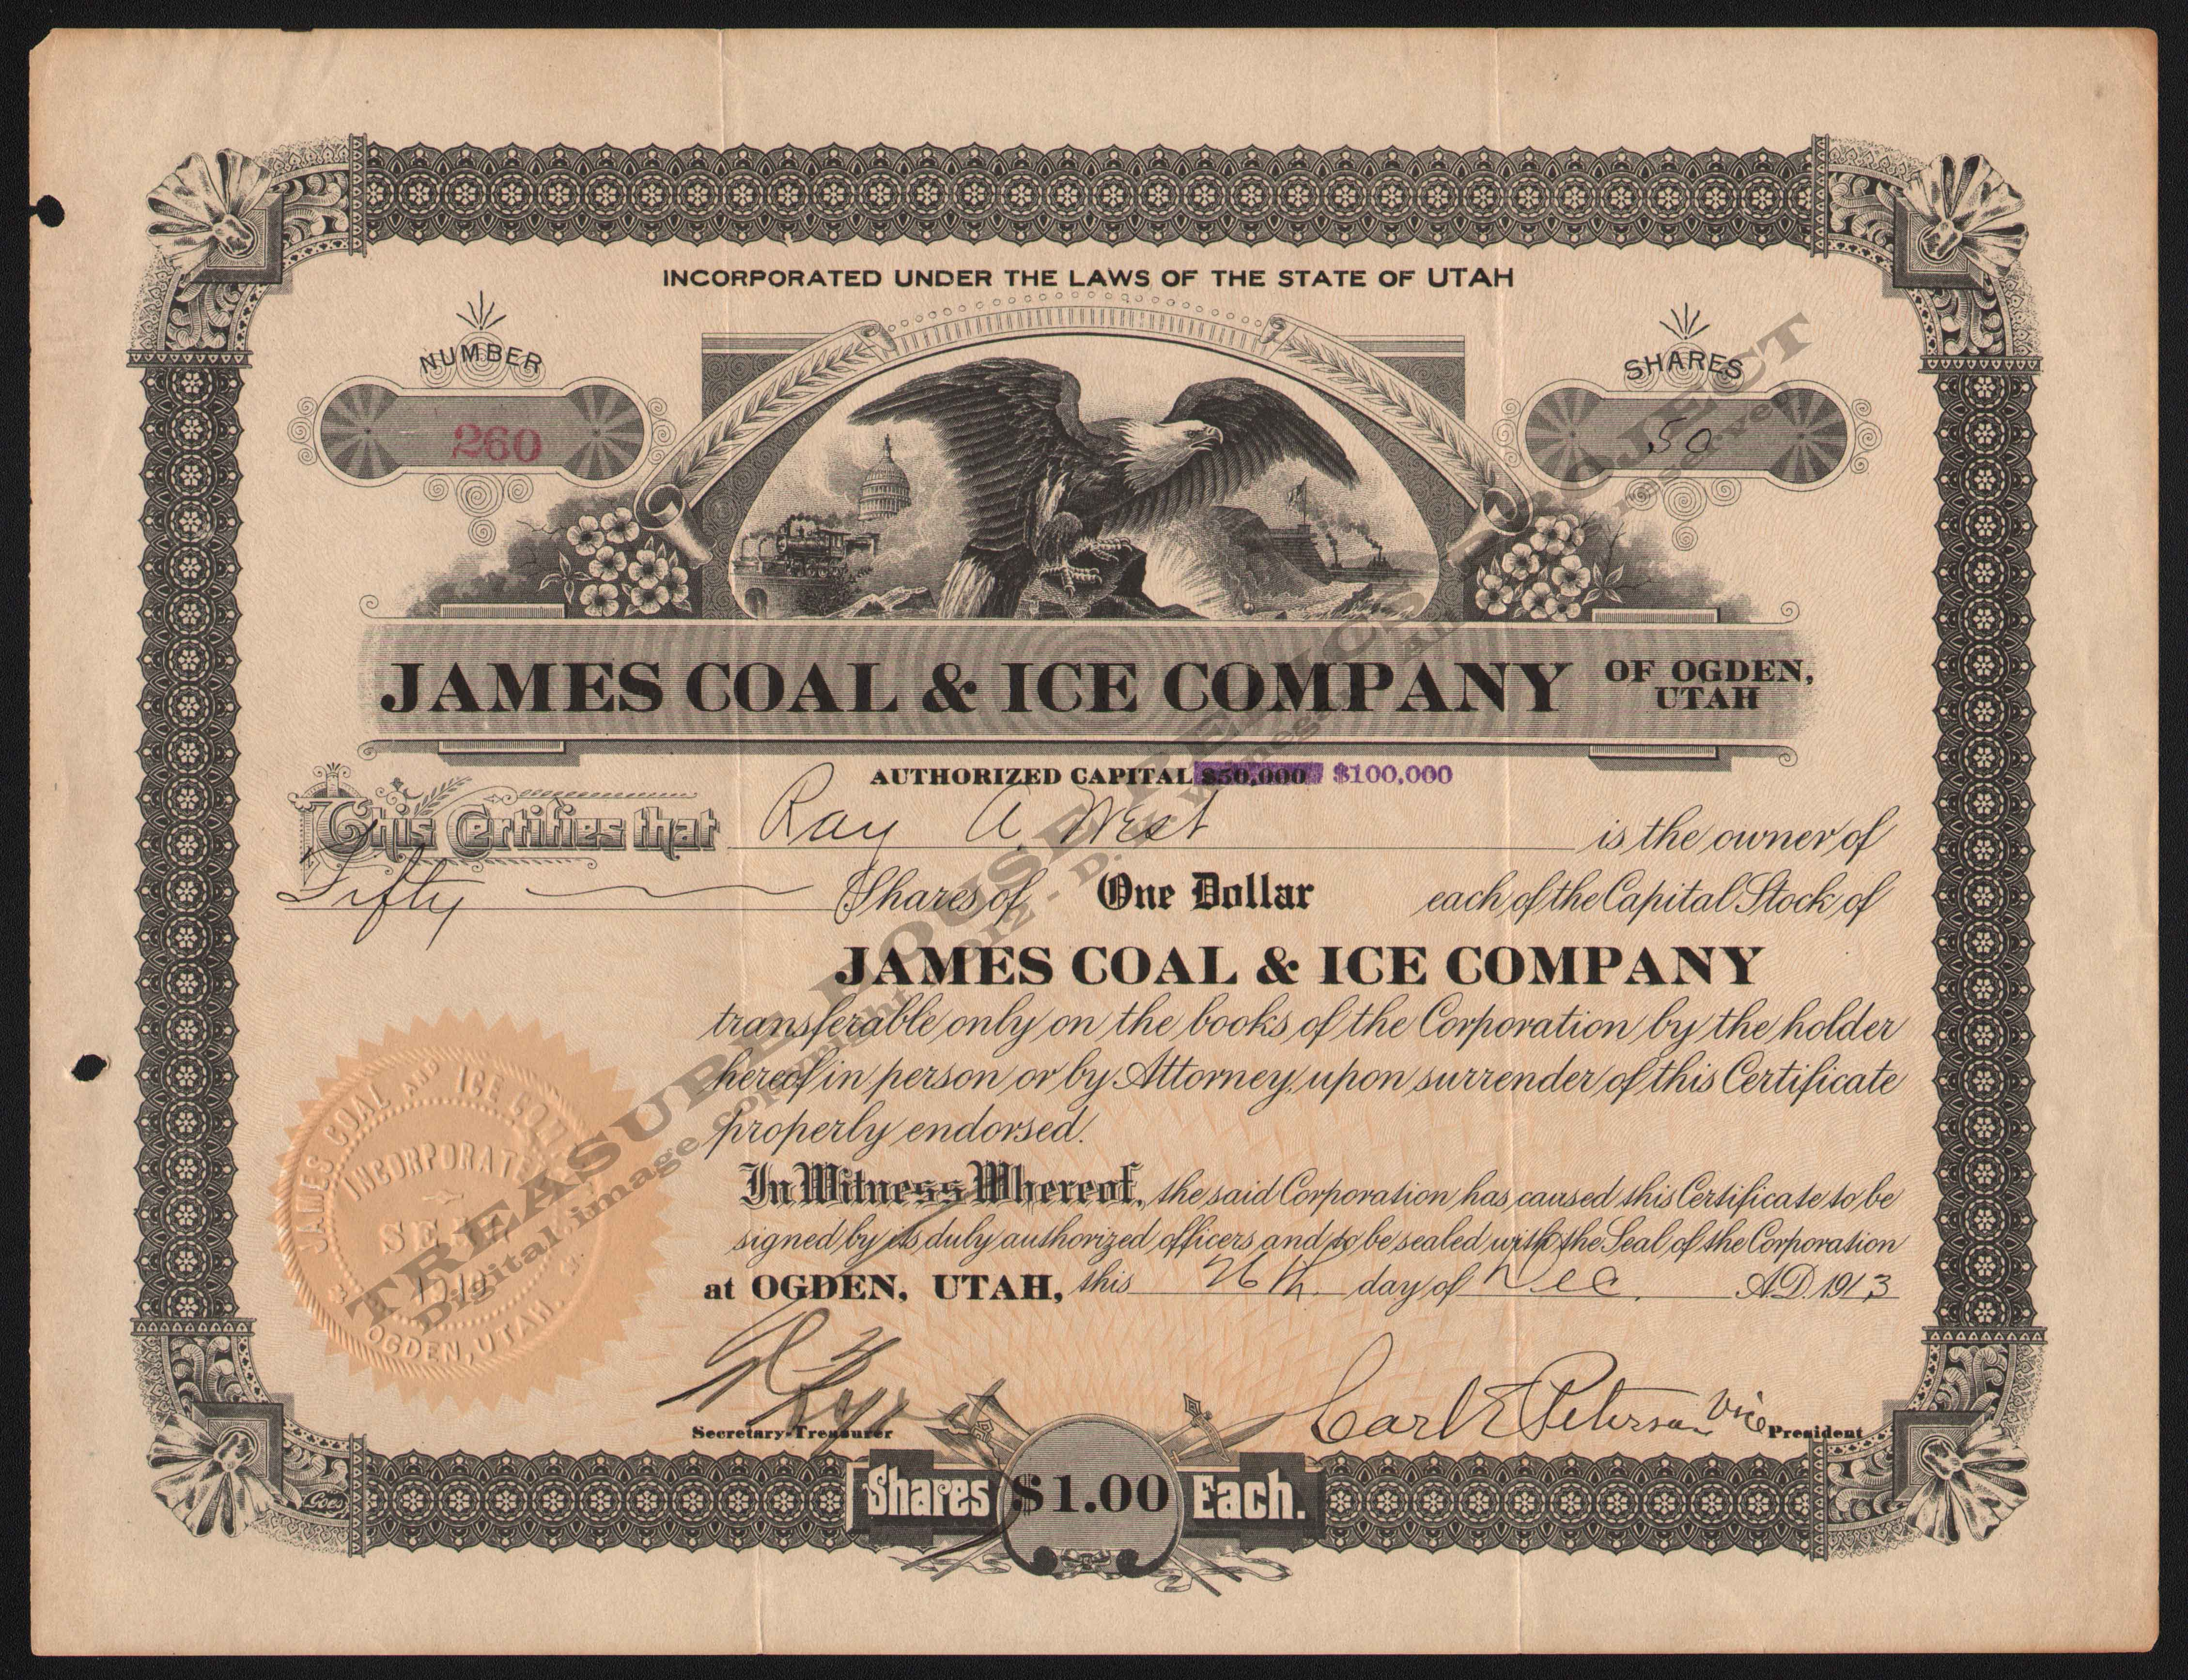 LETTERHEAD/JAMES_COAL_ICE_COMPANY_260_1913_GP_400_CROP_EMBOSS.jpg